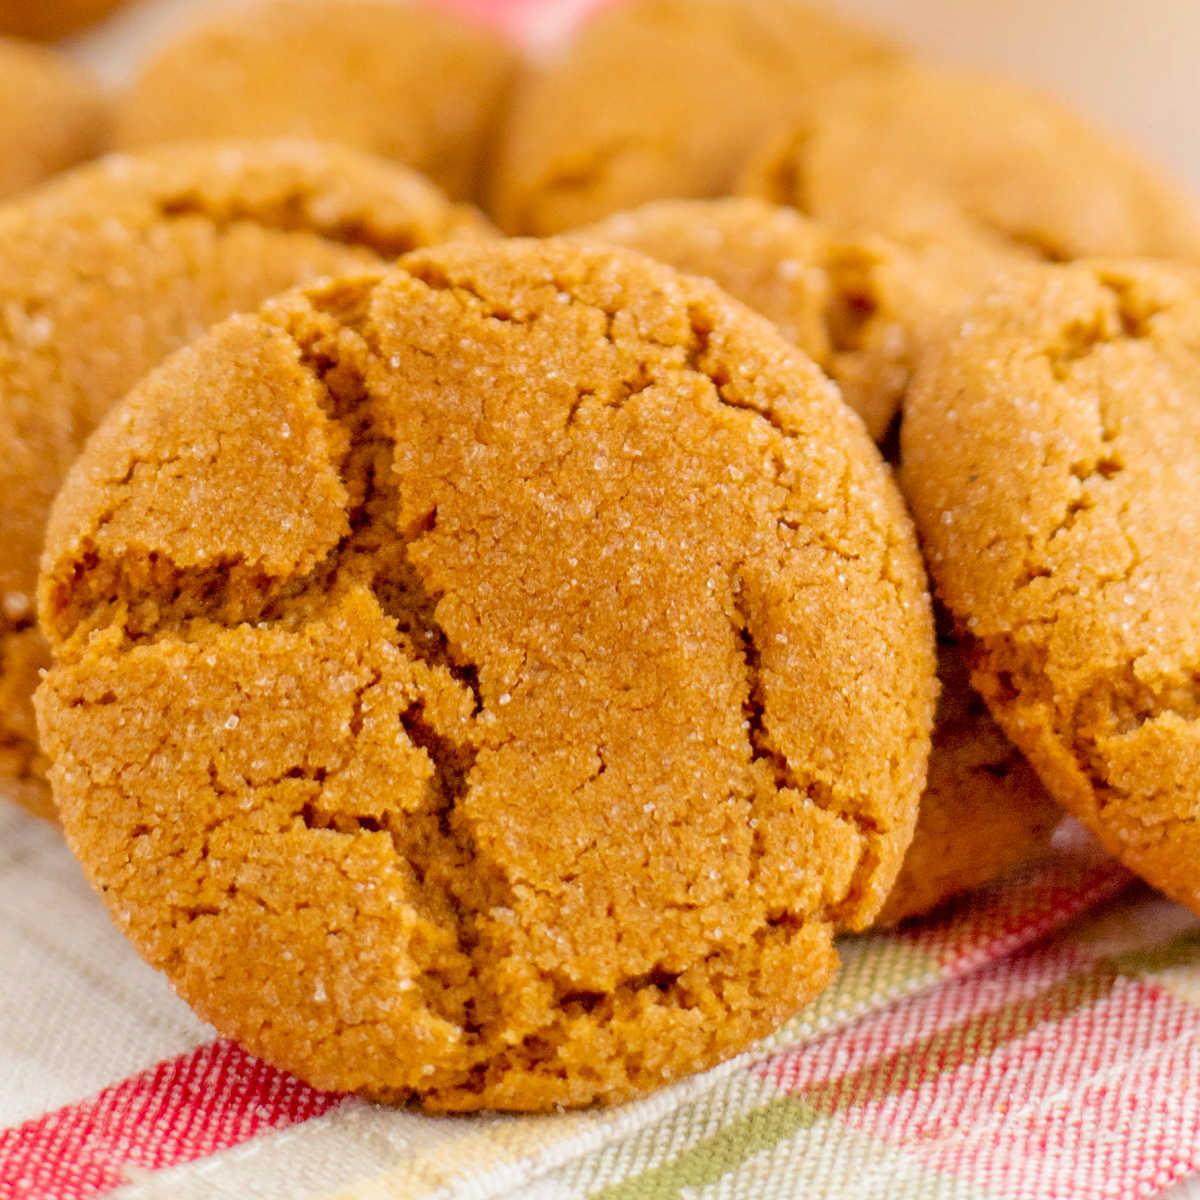 A close up picture of a finished gingersnap.